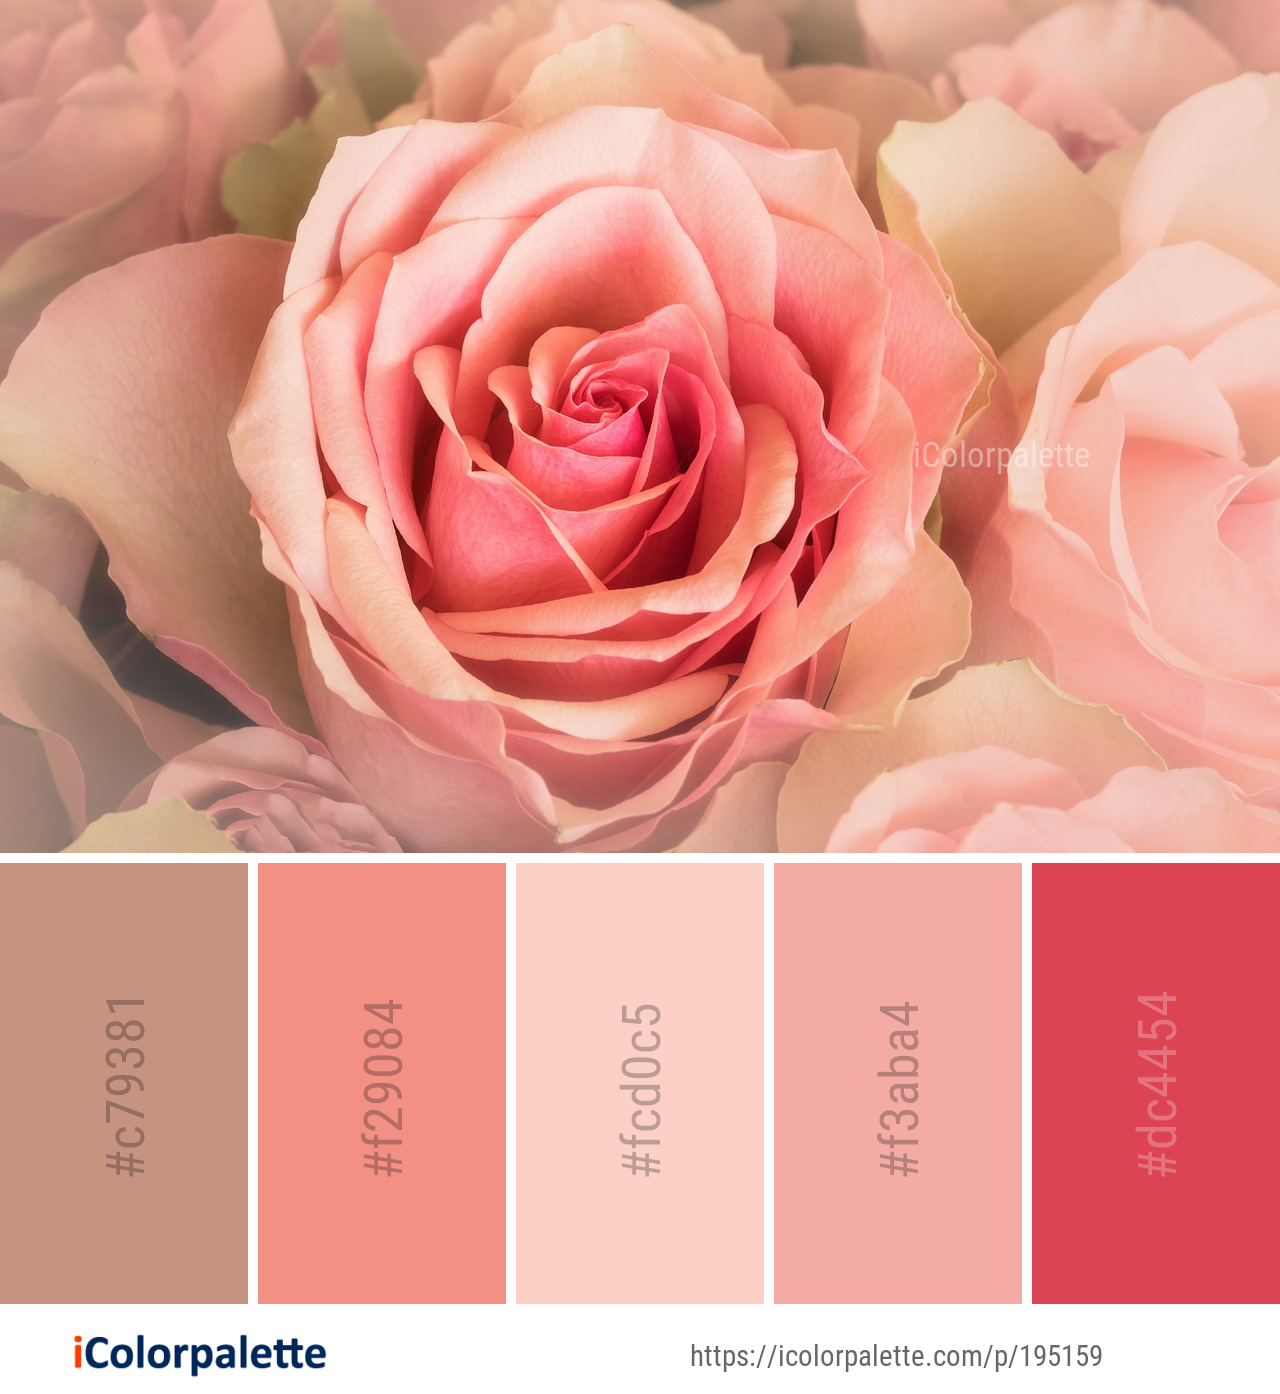 Color Palette Ideas From 9097 Flower Images Icolorpalette Color Palette Pink Paint Color Codes Hex Color Palette